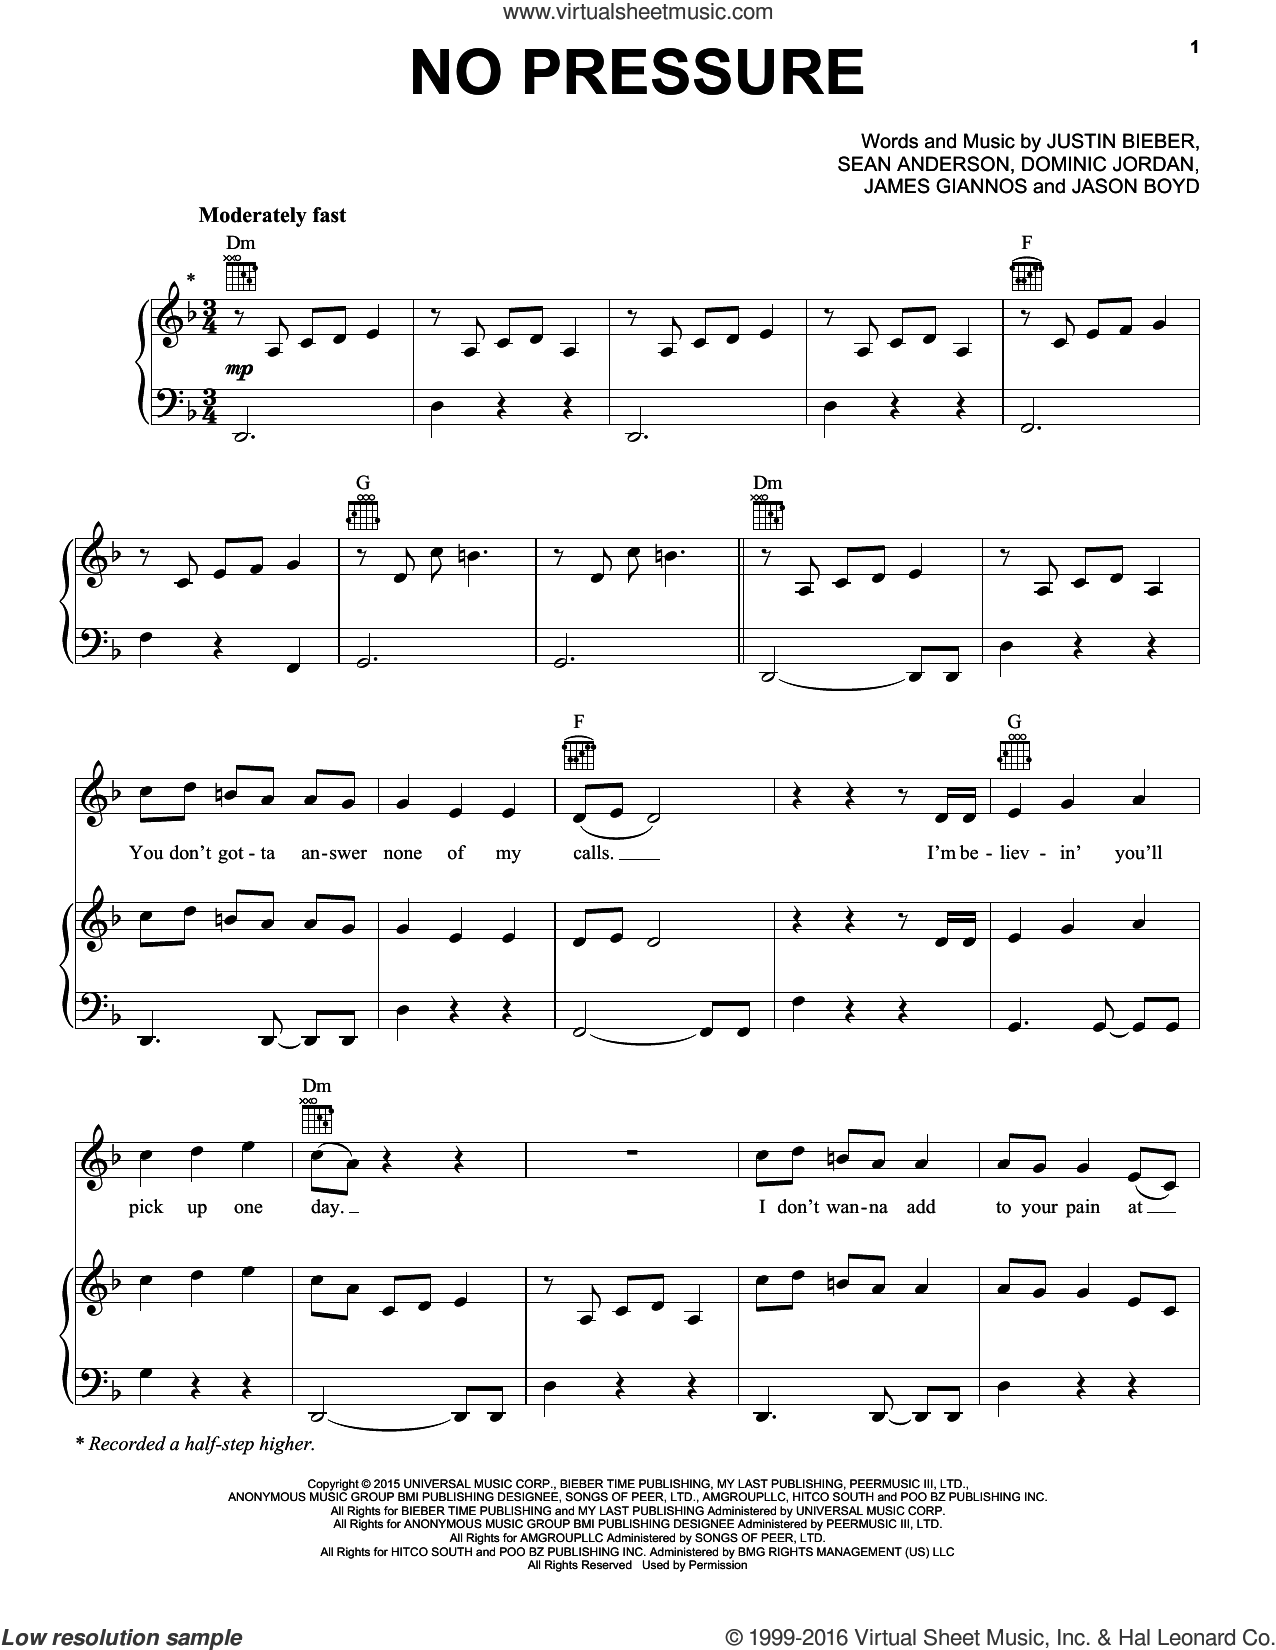 No Pressure sheet music for voice, piano or guitar by Sean Anderson, Jason Boyd and Justin Bieber. Score Image Preview.